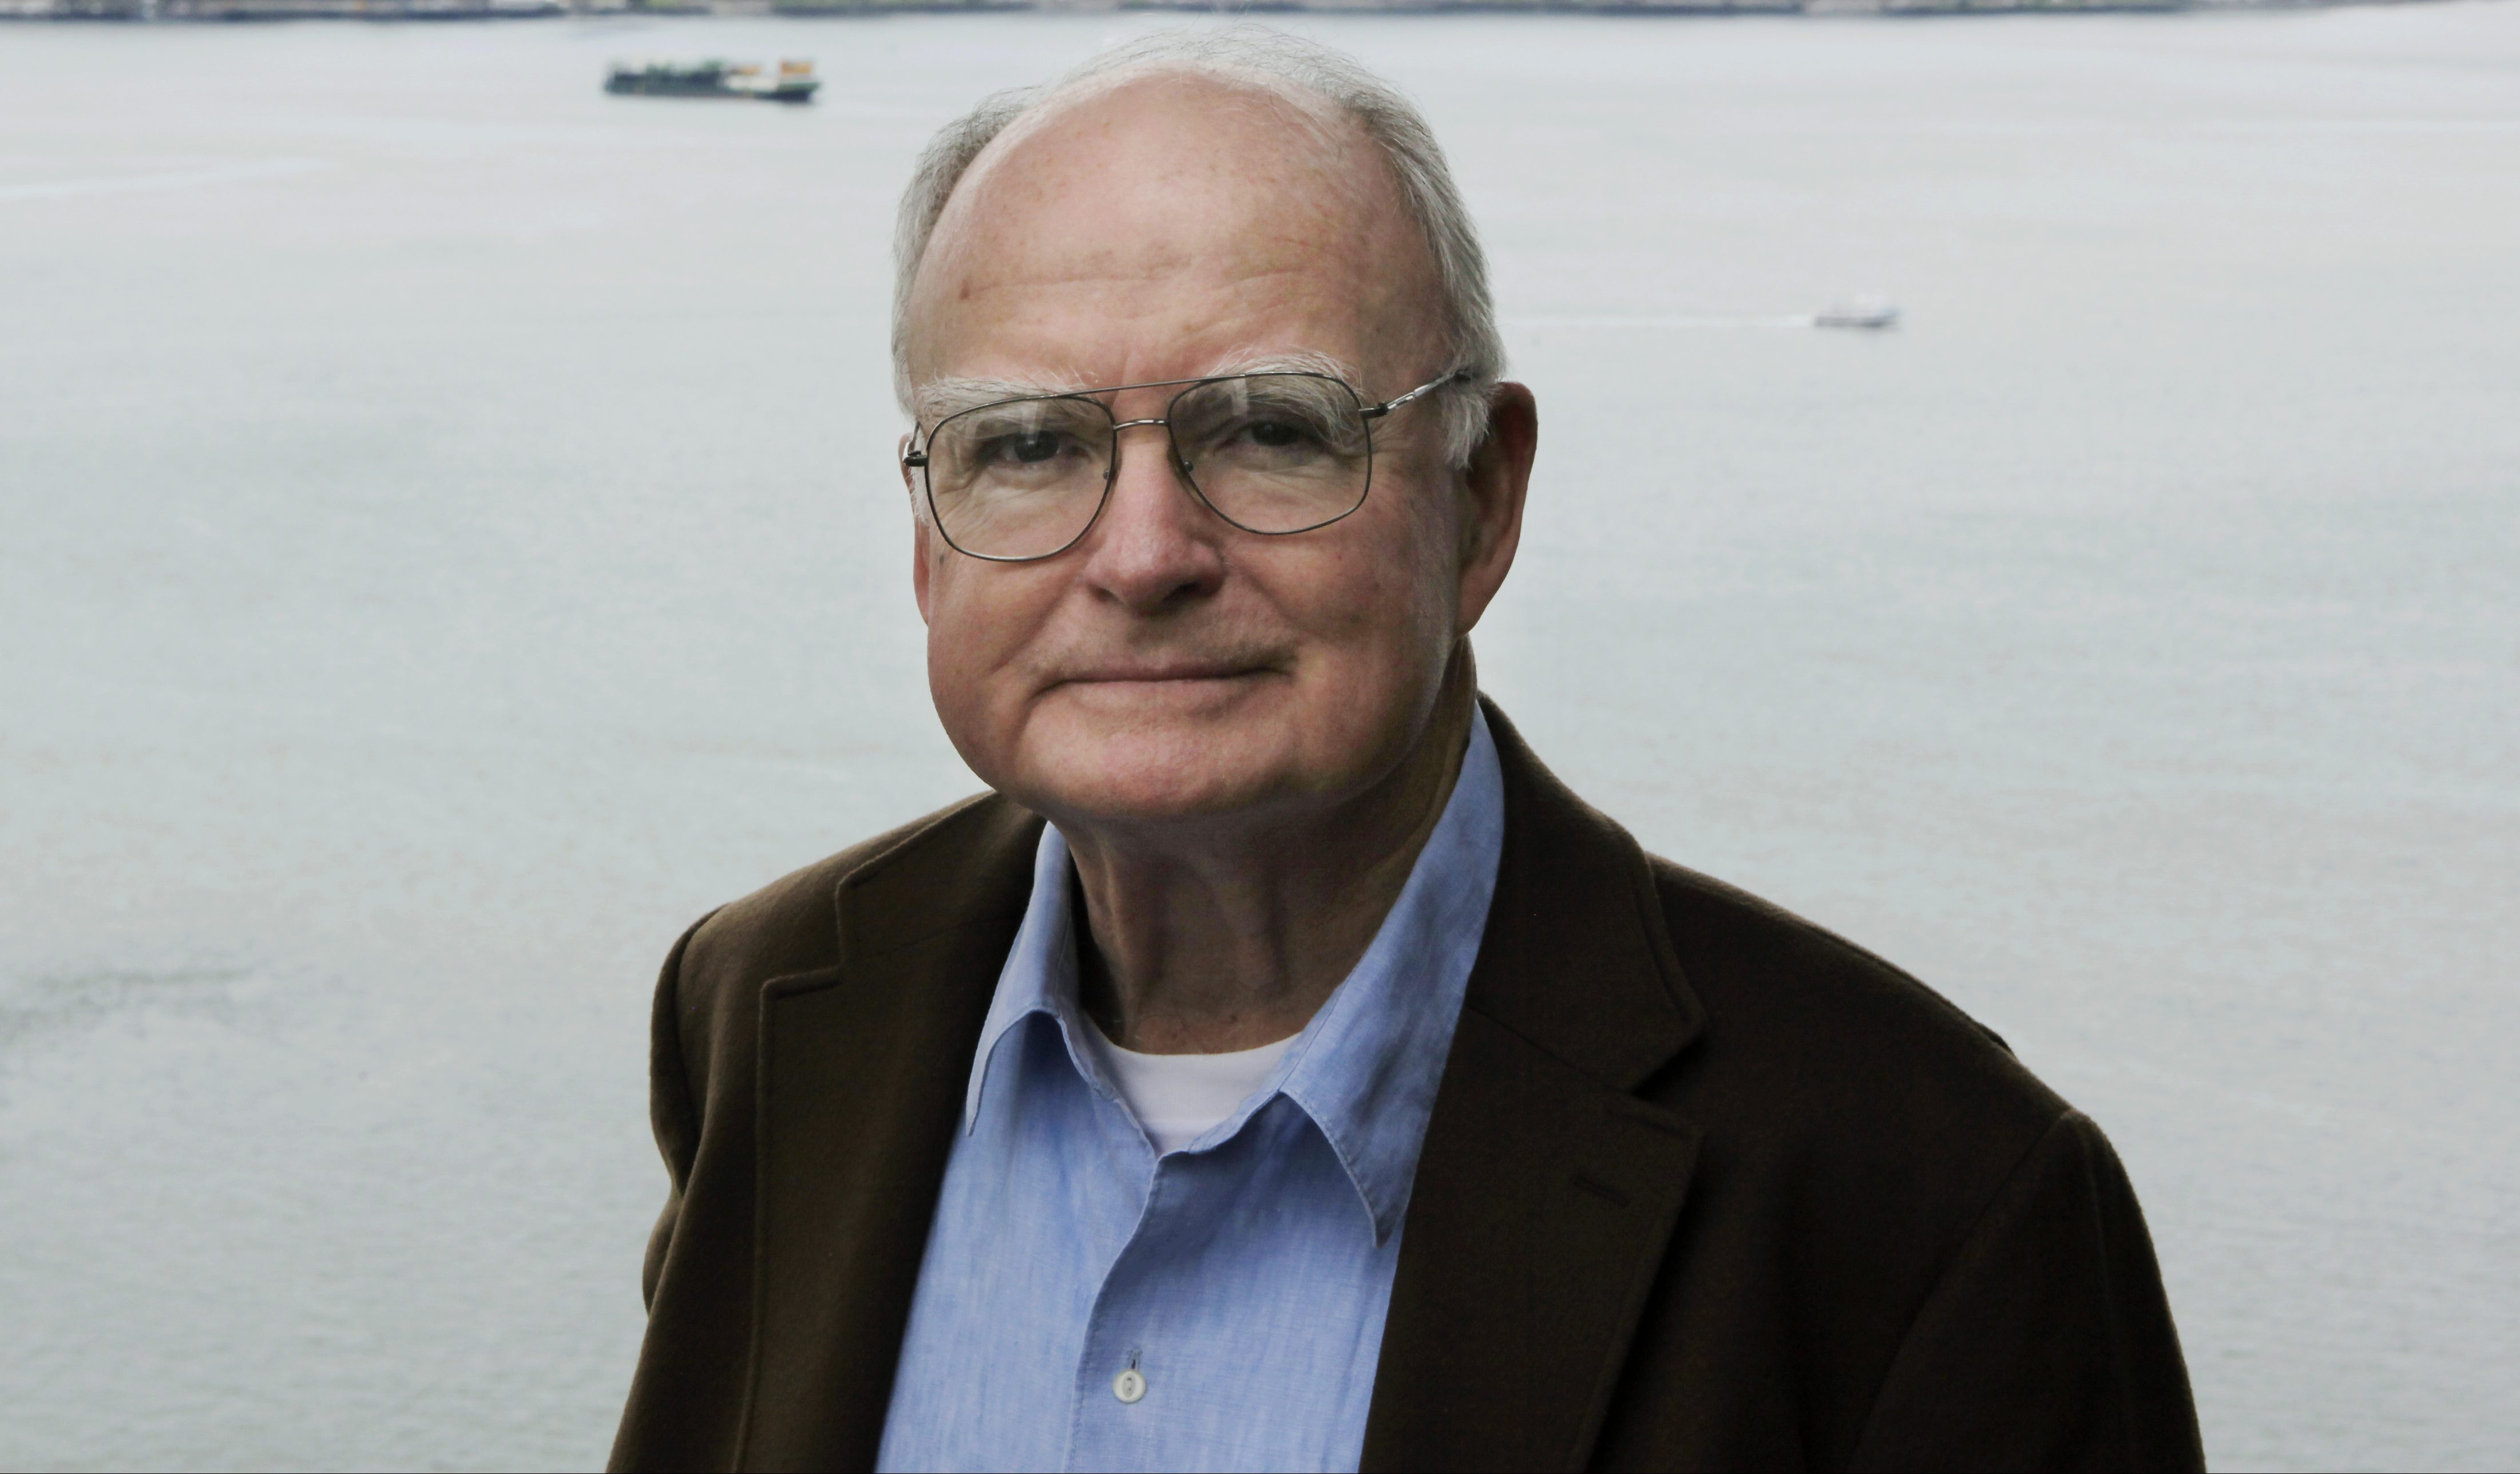 In this April 13, 2009, photo, William Ruckelshaus poses for photos at his office in Seattle.